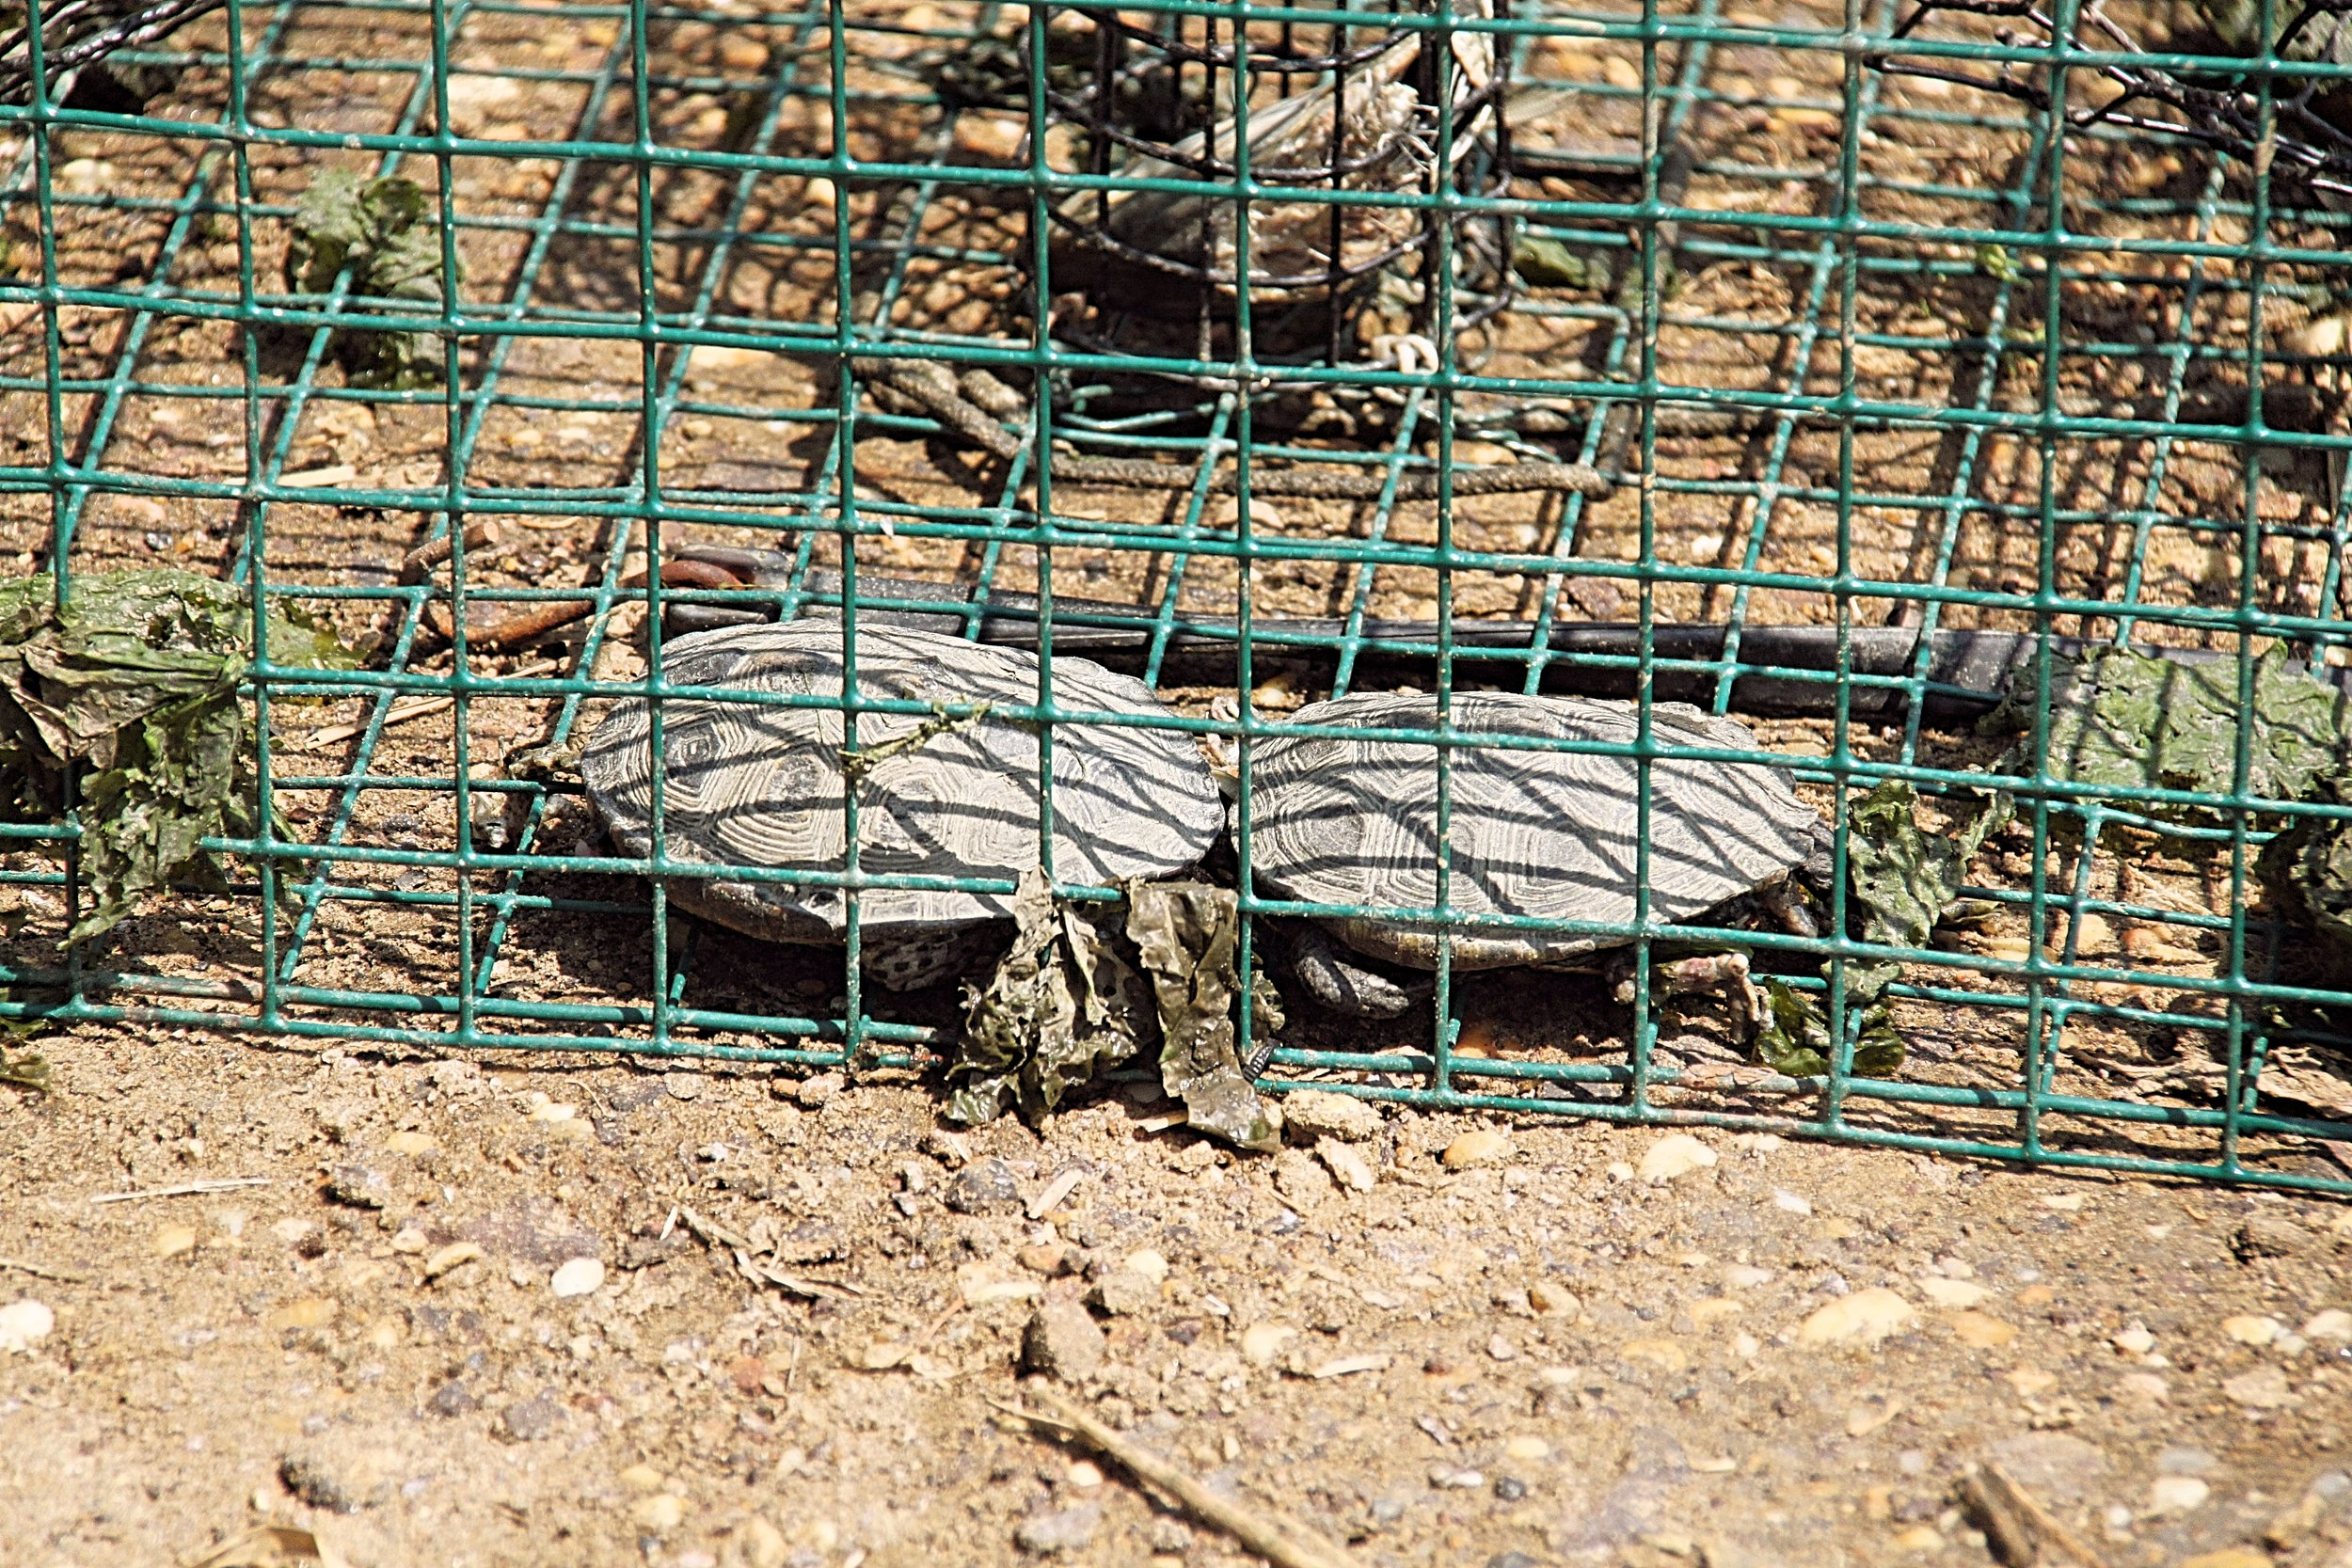 Two dead male diamondback terrapin turtles found in a crab trap by a NJ Conservation Officer, July 2010 in the Navesink River, Middletown Township, NJ.